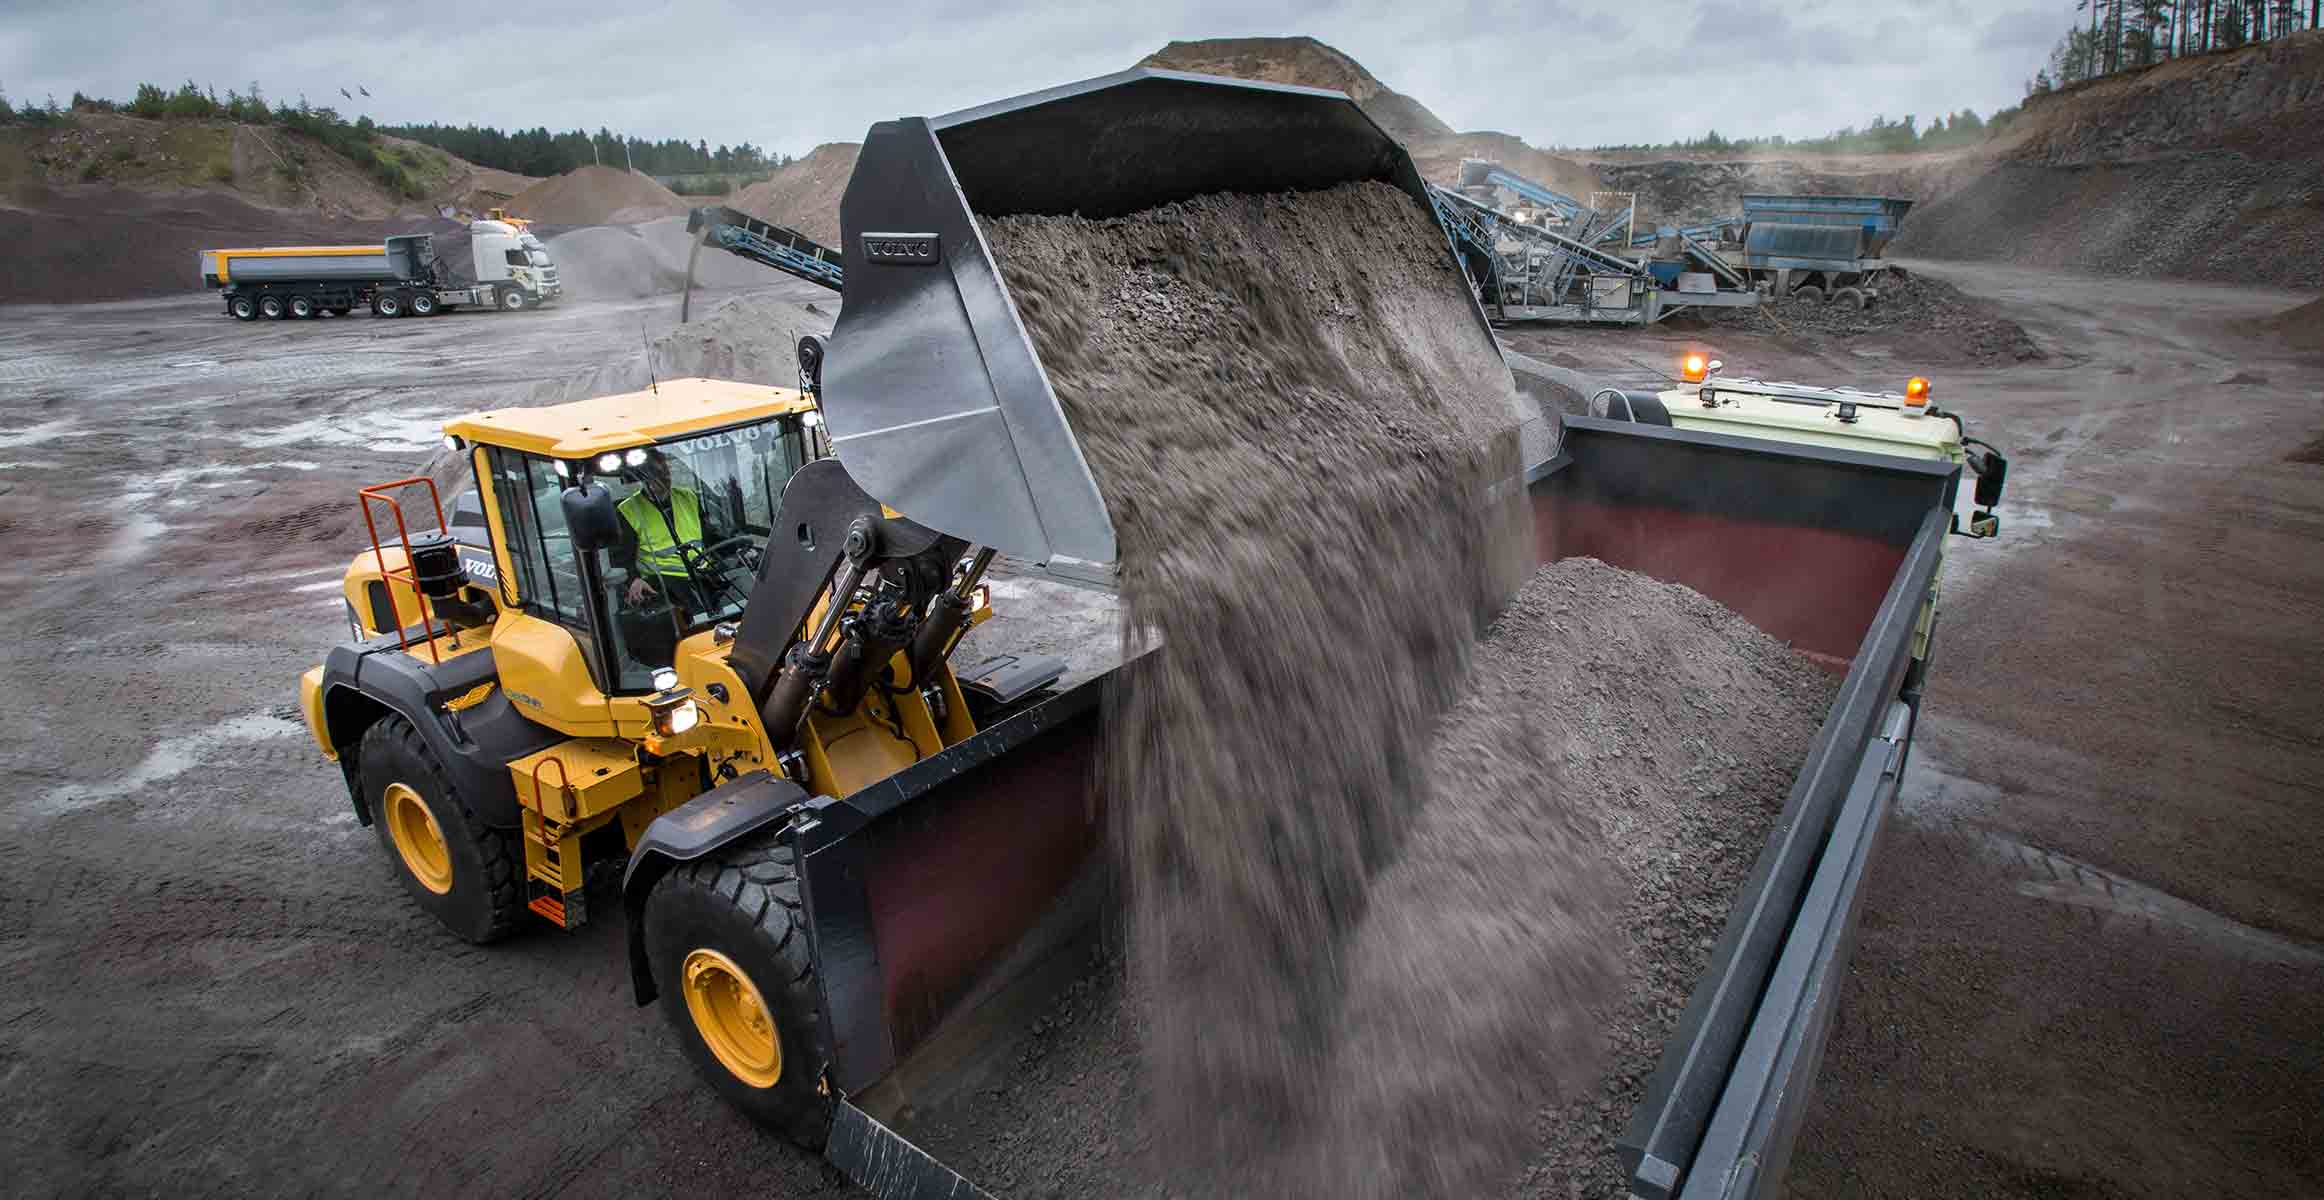 L120H | Large Wheel Loaders | Media gallery | Volvo Construction Equipment